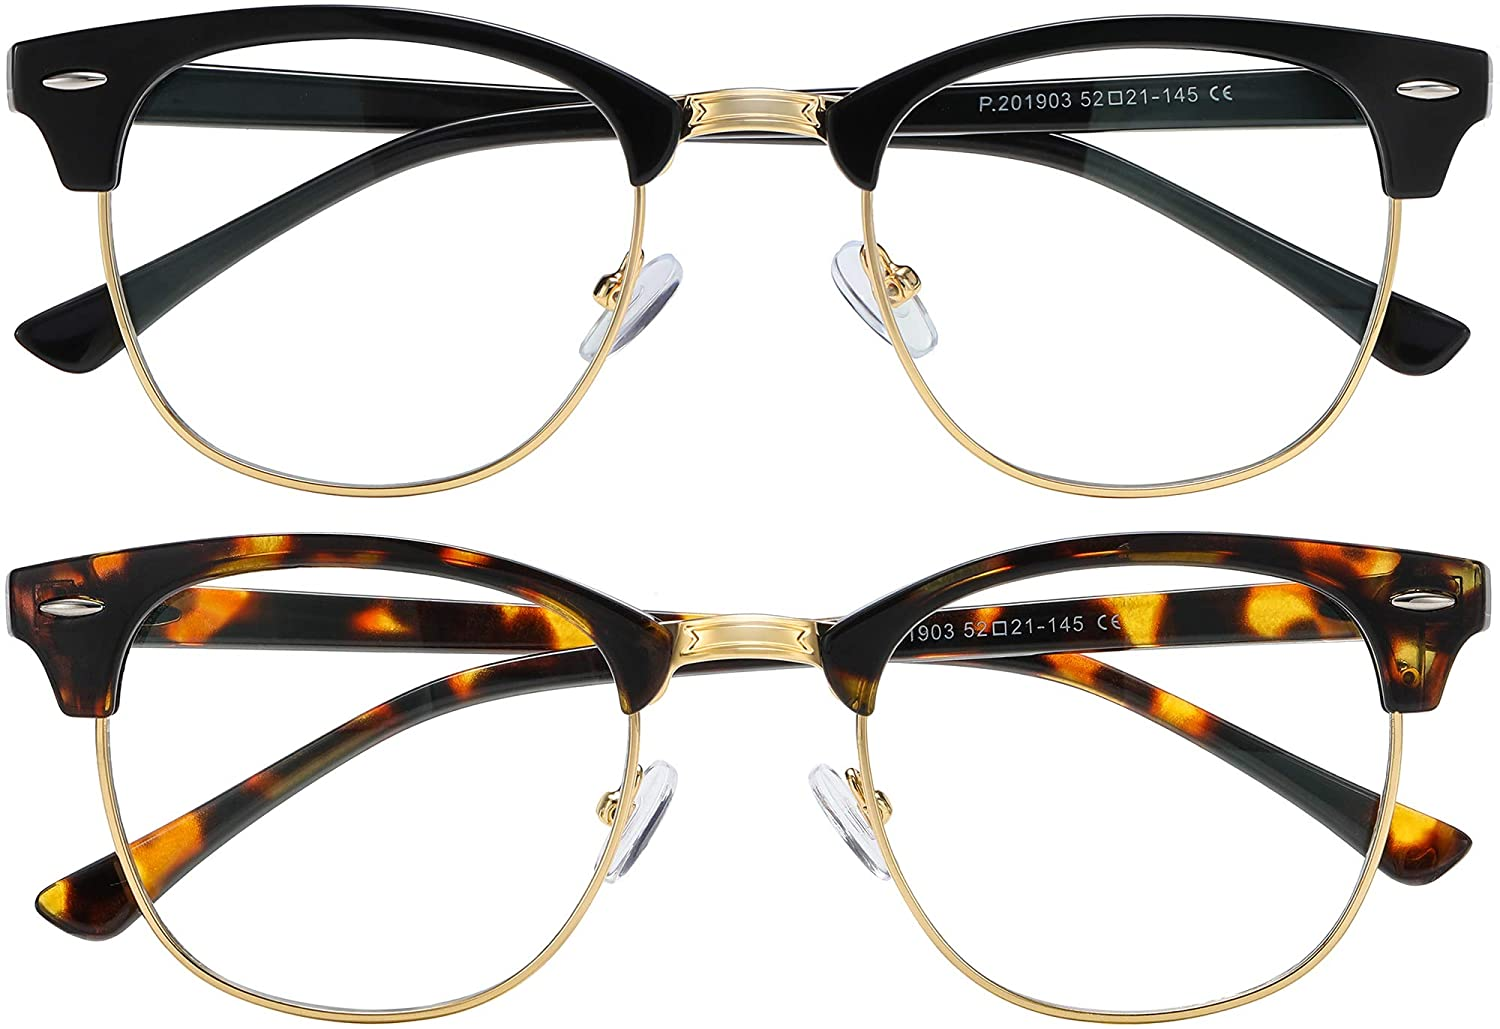 AIMISUV two pairs of semi-rimmed blue light glasses in black and brown tortoise shell